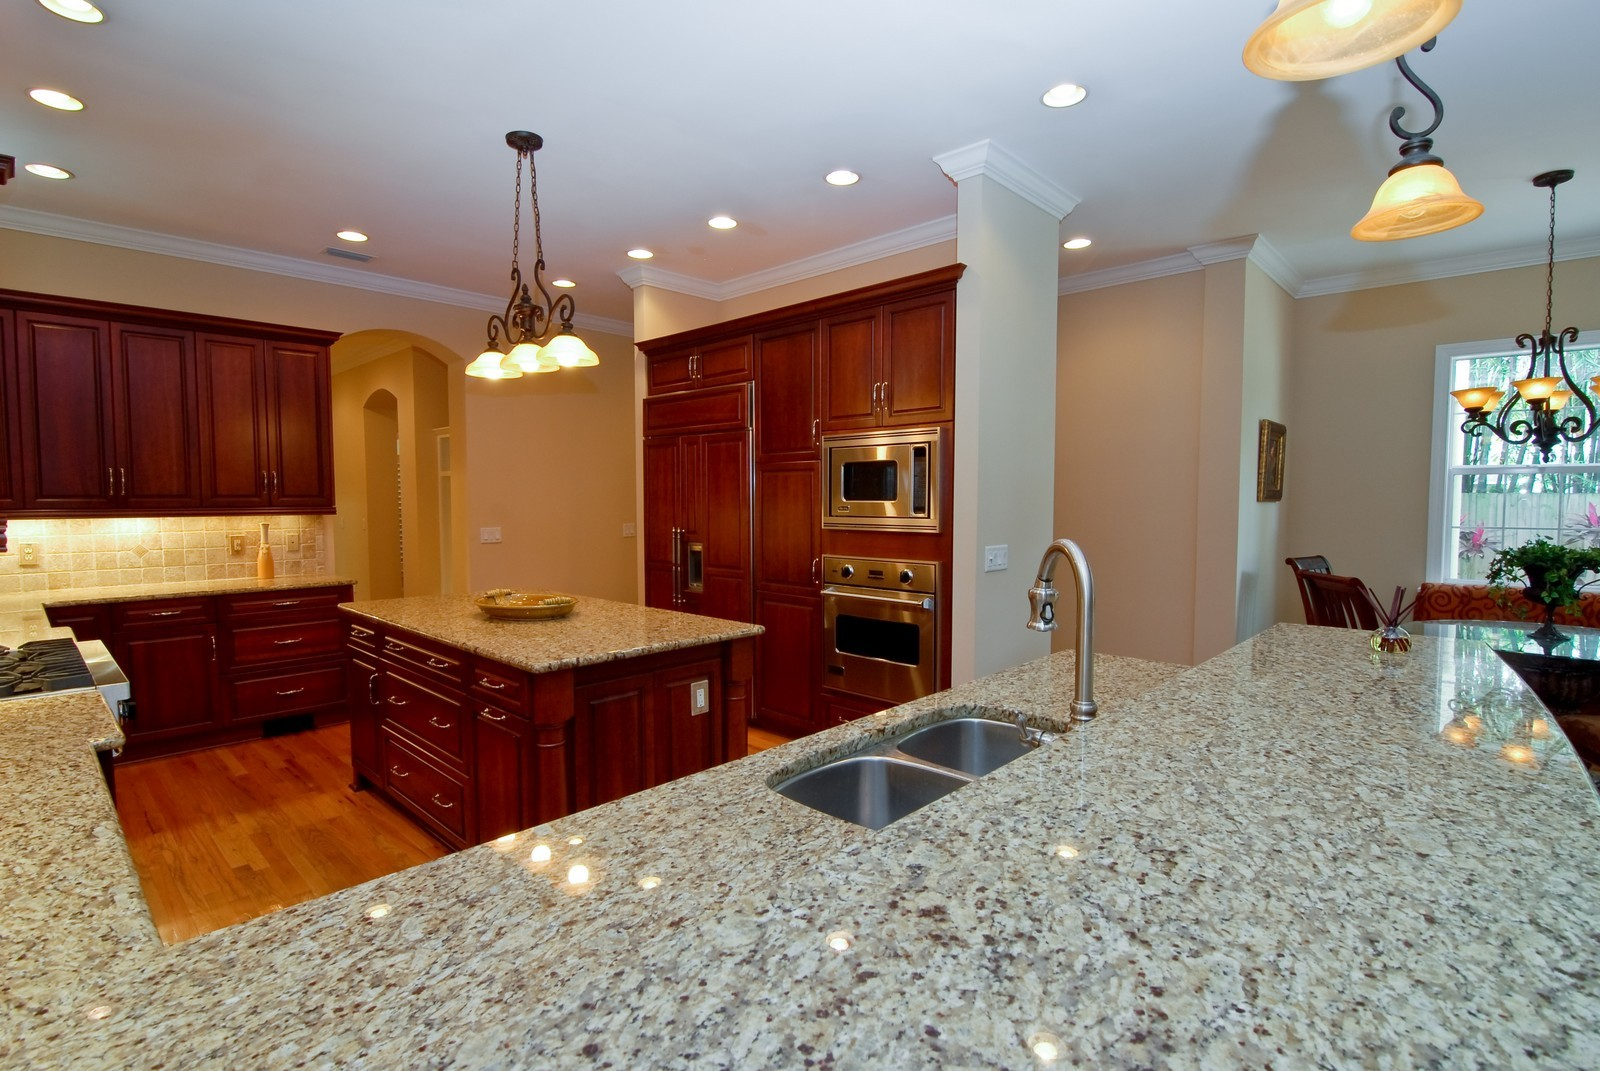 Real Estate Photography - 3107 Fountain Blvd, Tampa, FL, 33609 - Kitchen / Breakfast Room